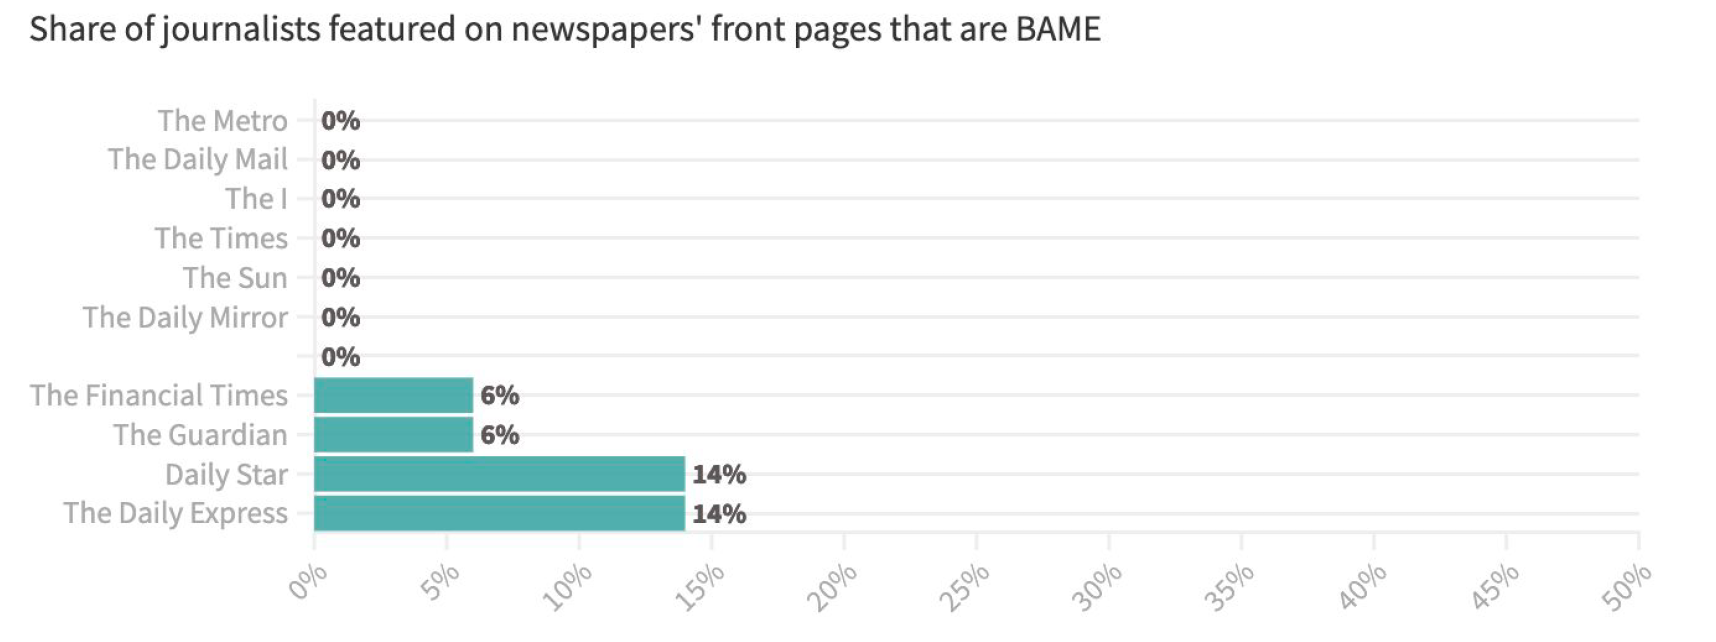 A graph showing the percentage of newspaper front page stories written by BAME journalists